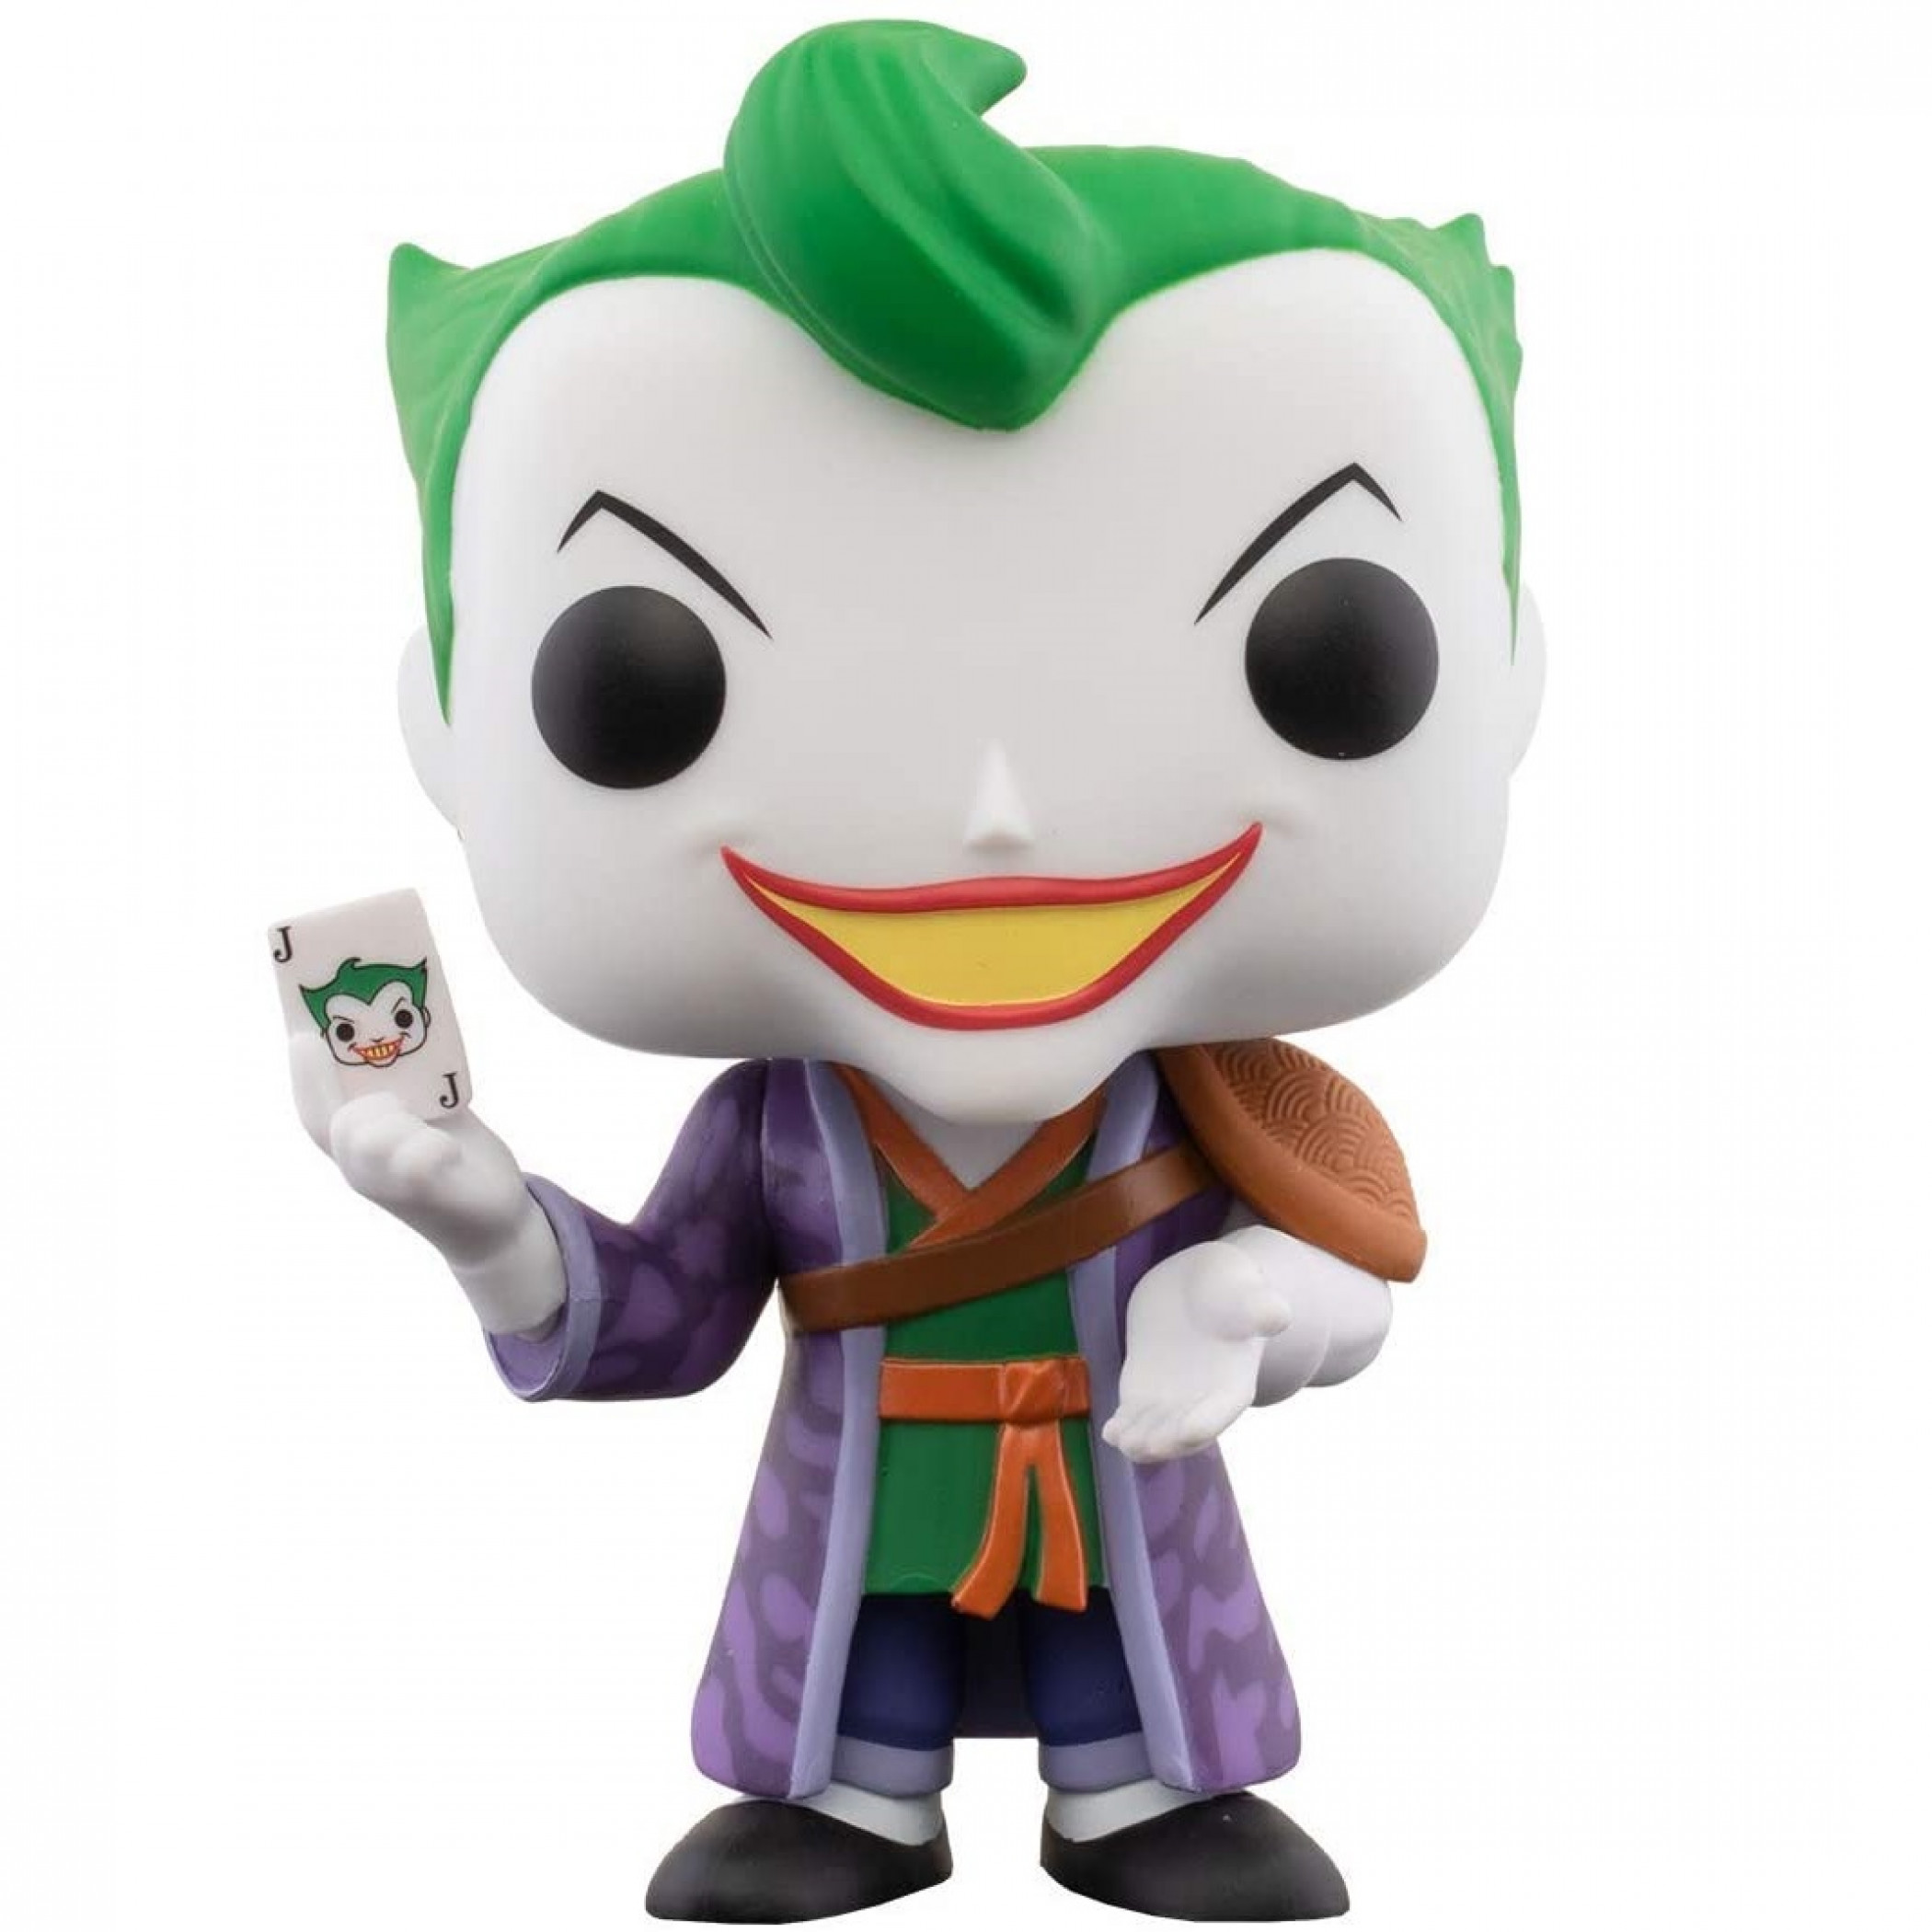 Joker Imperial Palace Funko Pop! Vinyl Figure with Chase